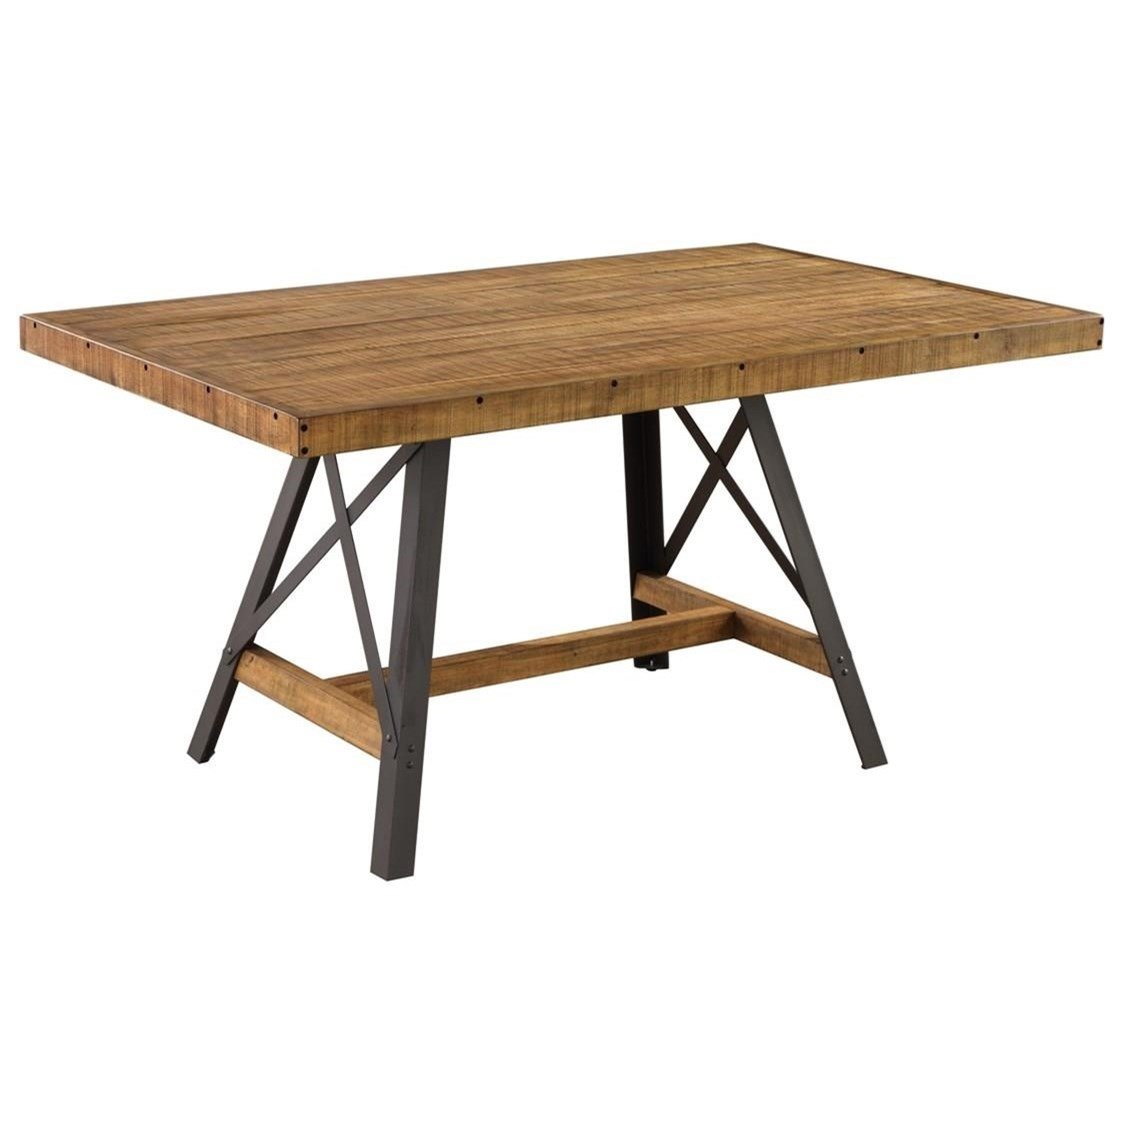 Chandler Rectangular Dining Table by Emerald at Northeast Factory Direct